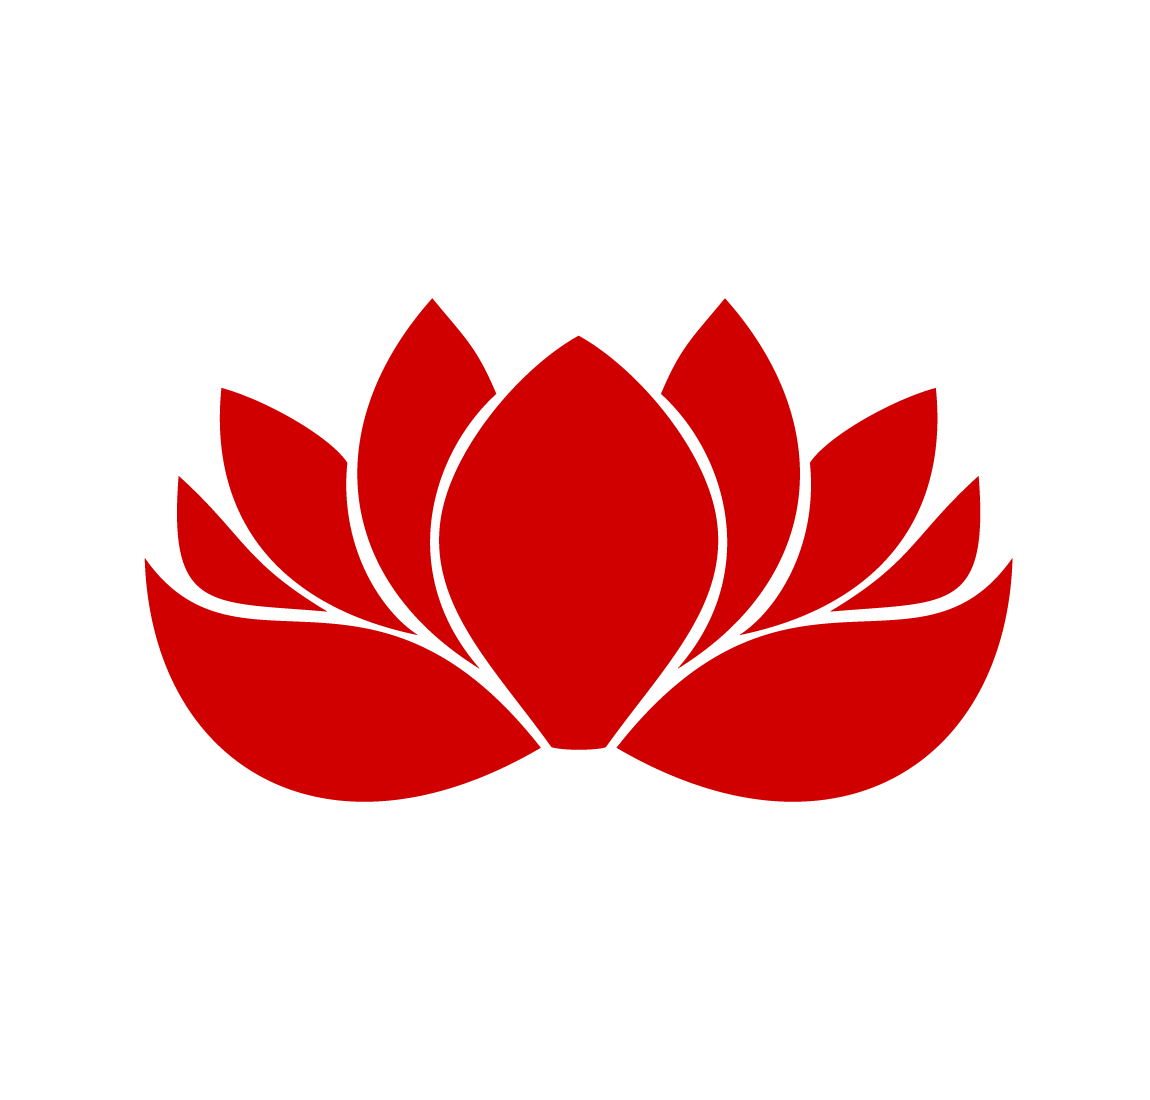 Png Lotus Simple